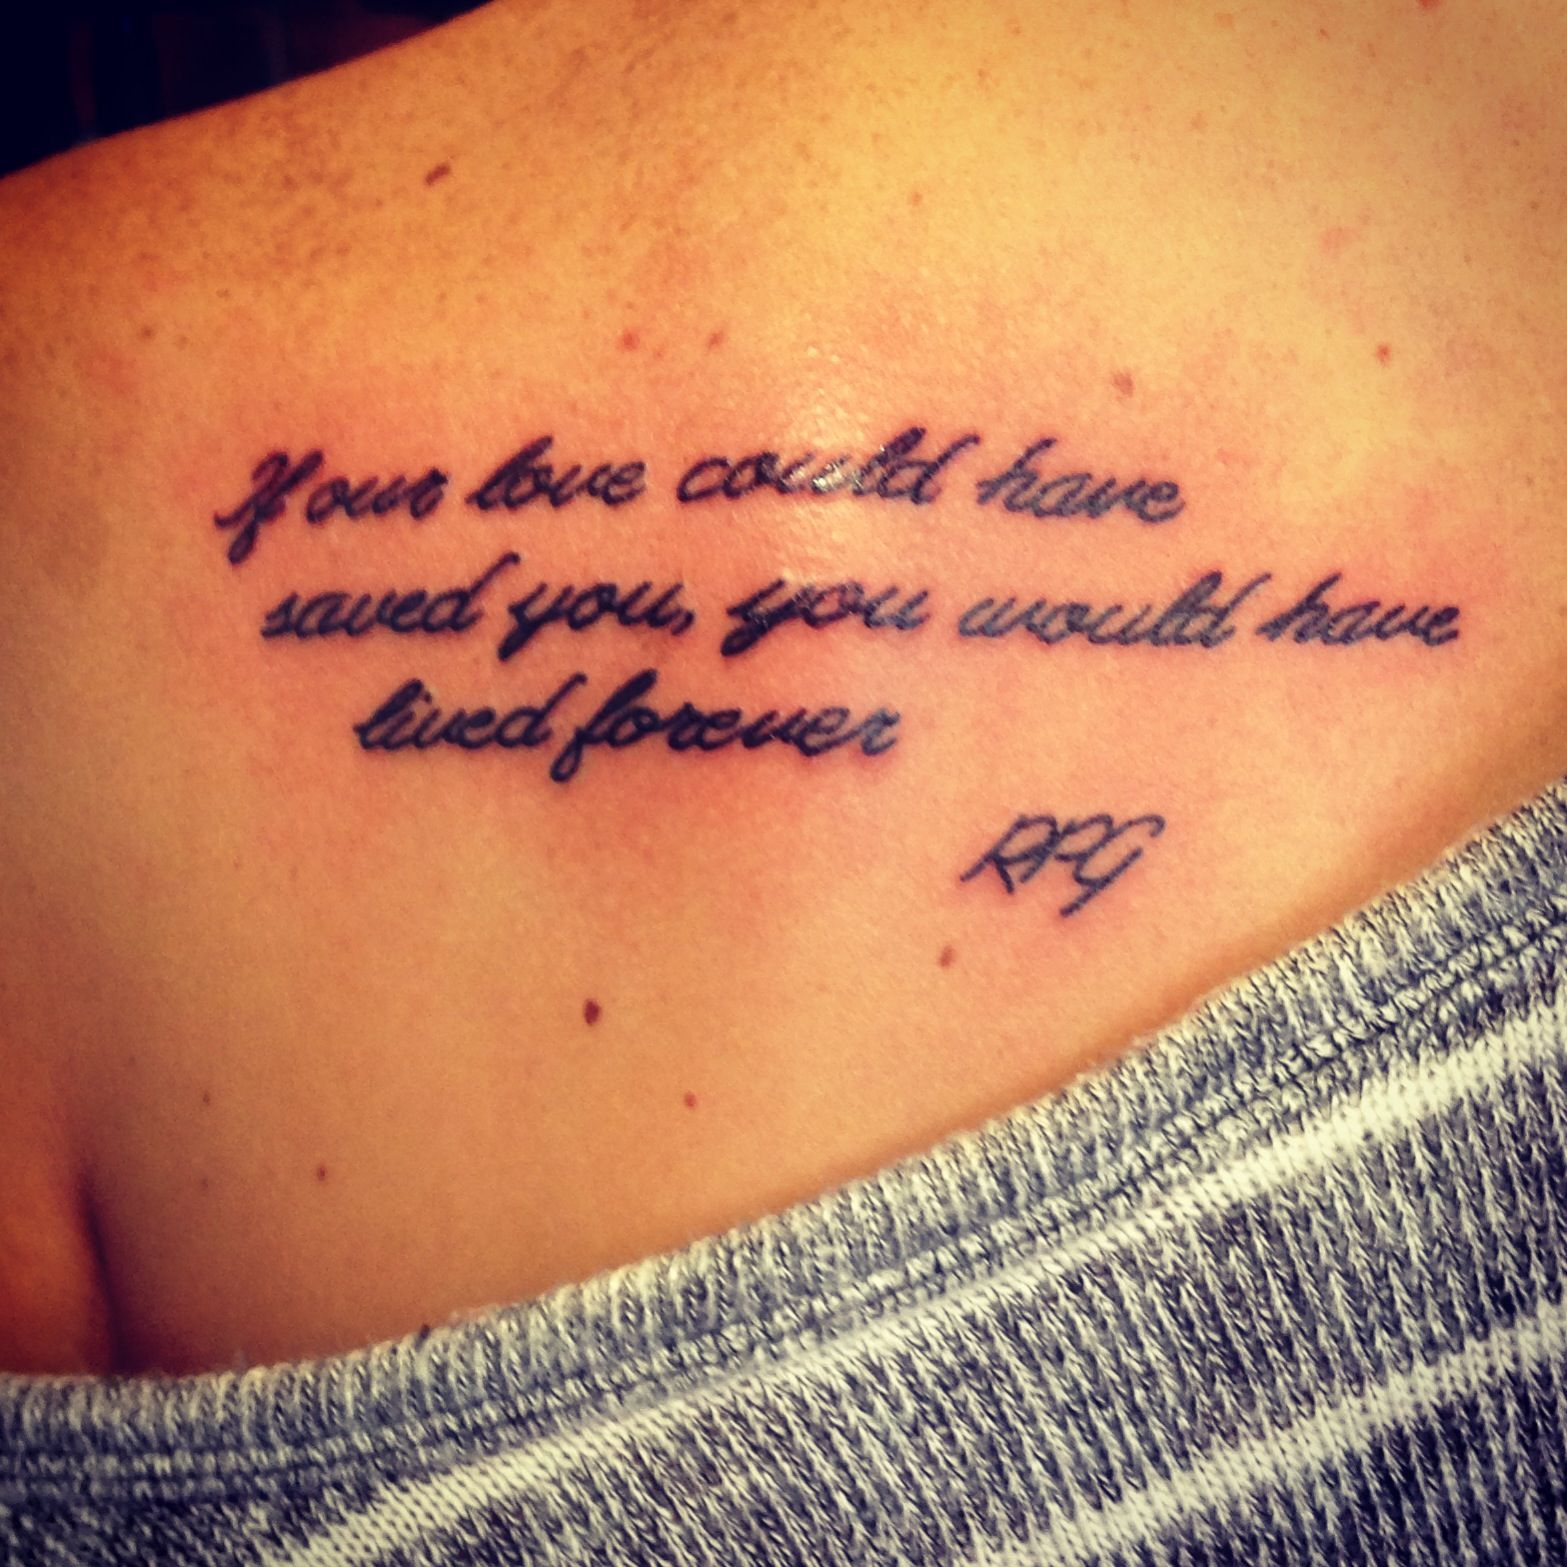 Tattoo Quotes For Passed Loved Ones: Remembrance Tattoo In Honor Of My Grandpa Who Passed Away